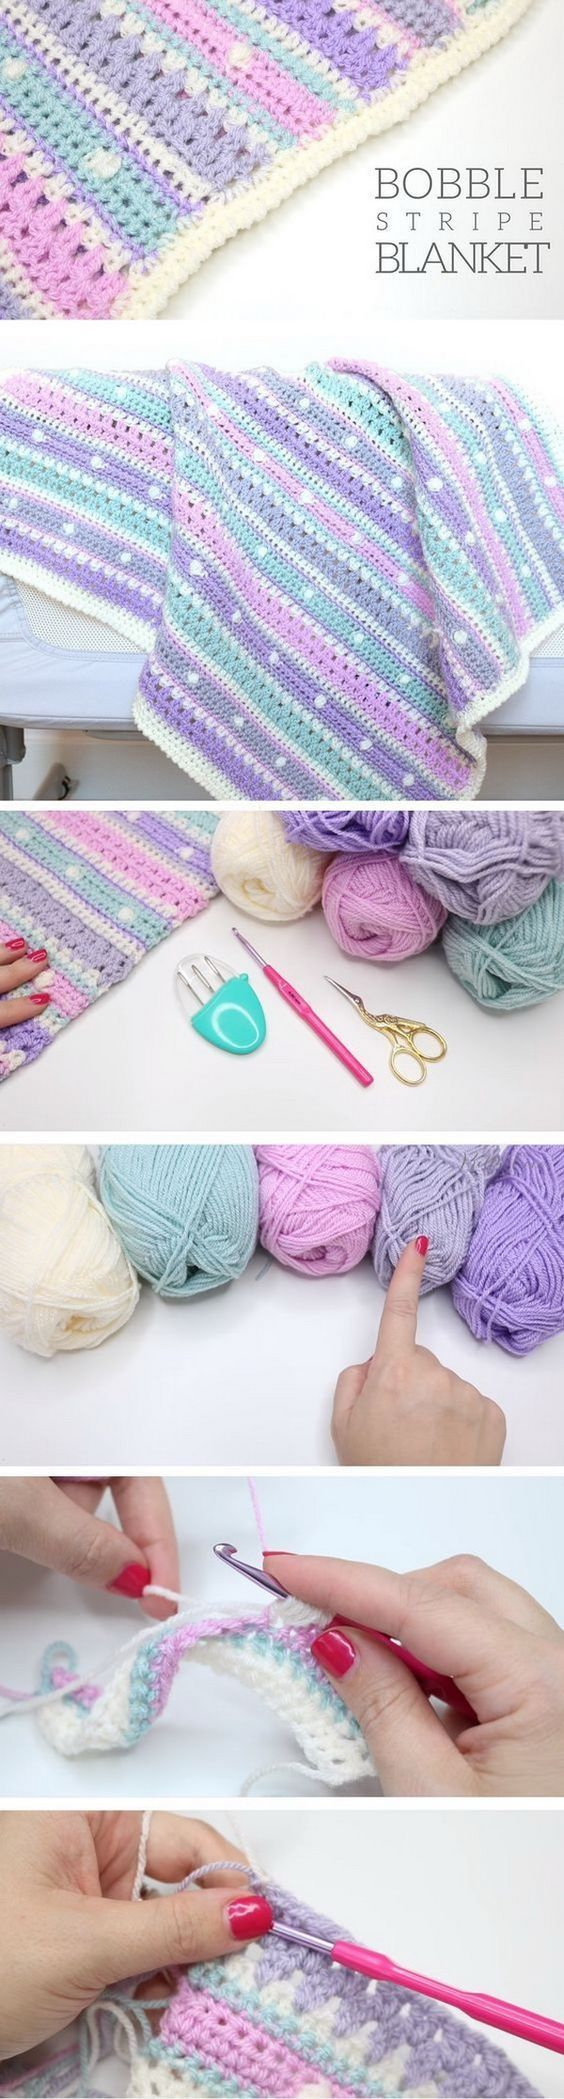 45+ Quick And Easy Crochet Blanket Patterns For Beginners | Bordados ...